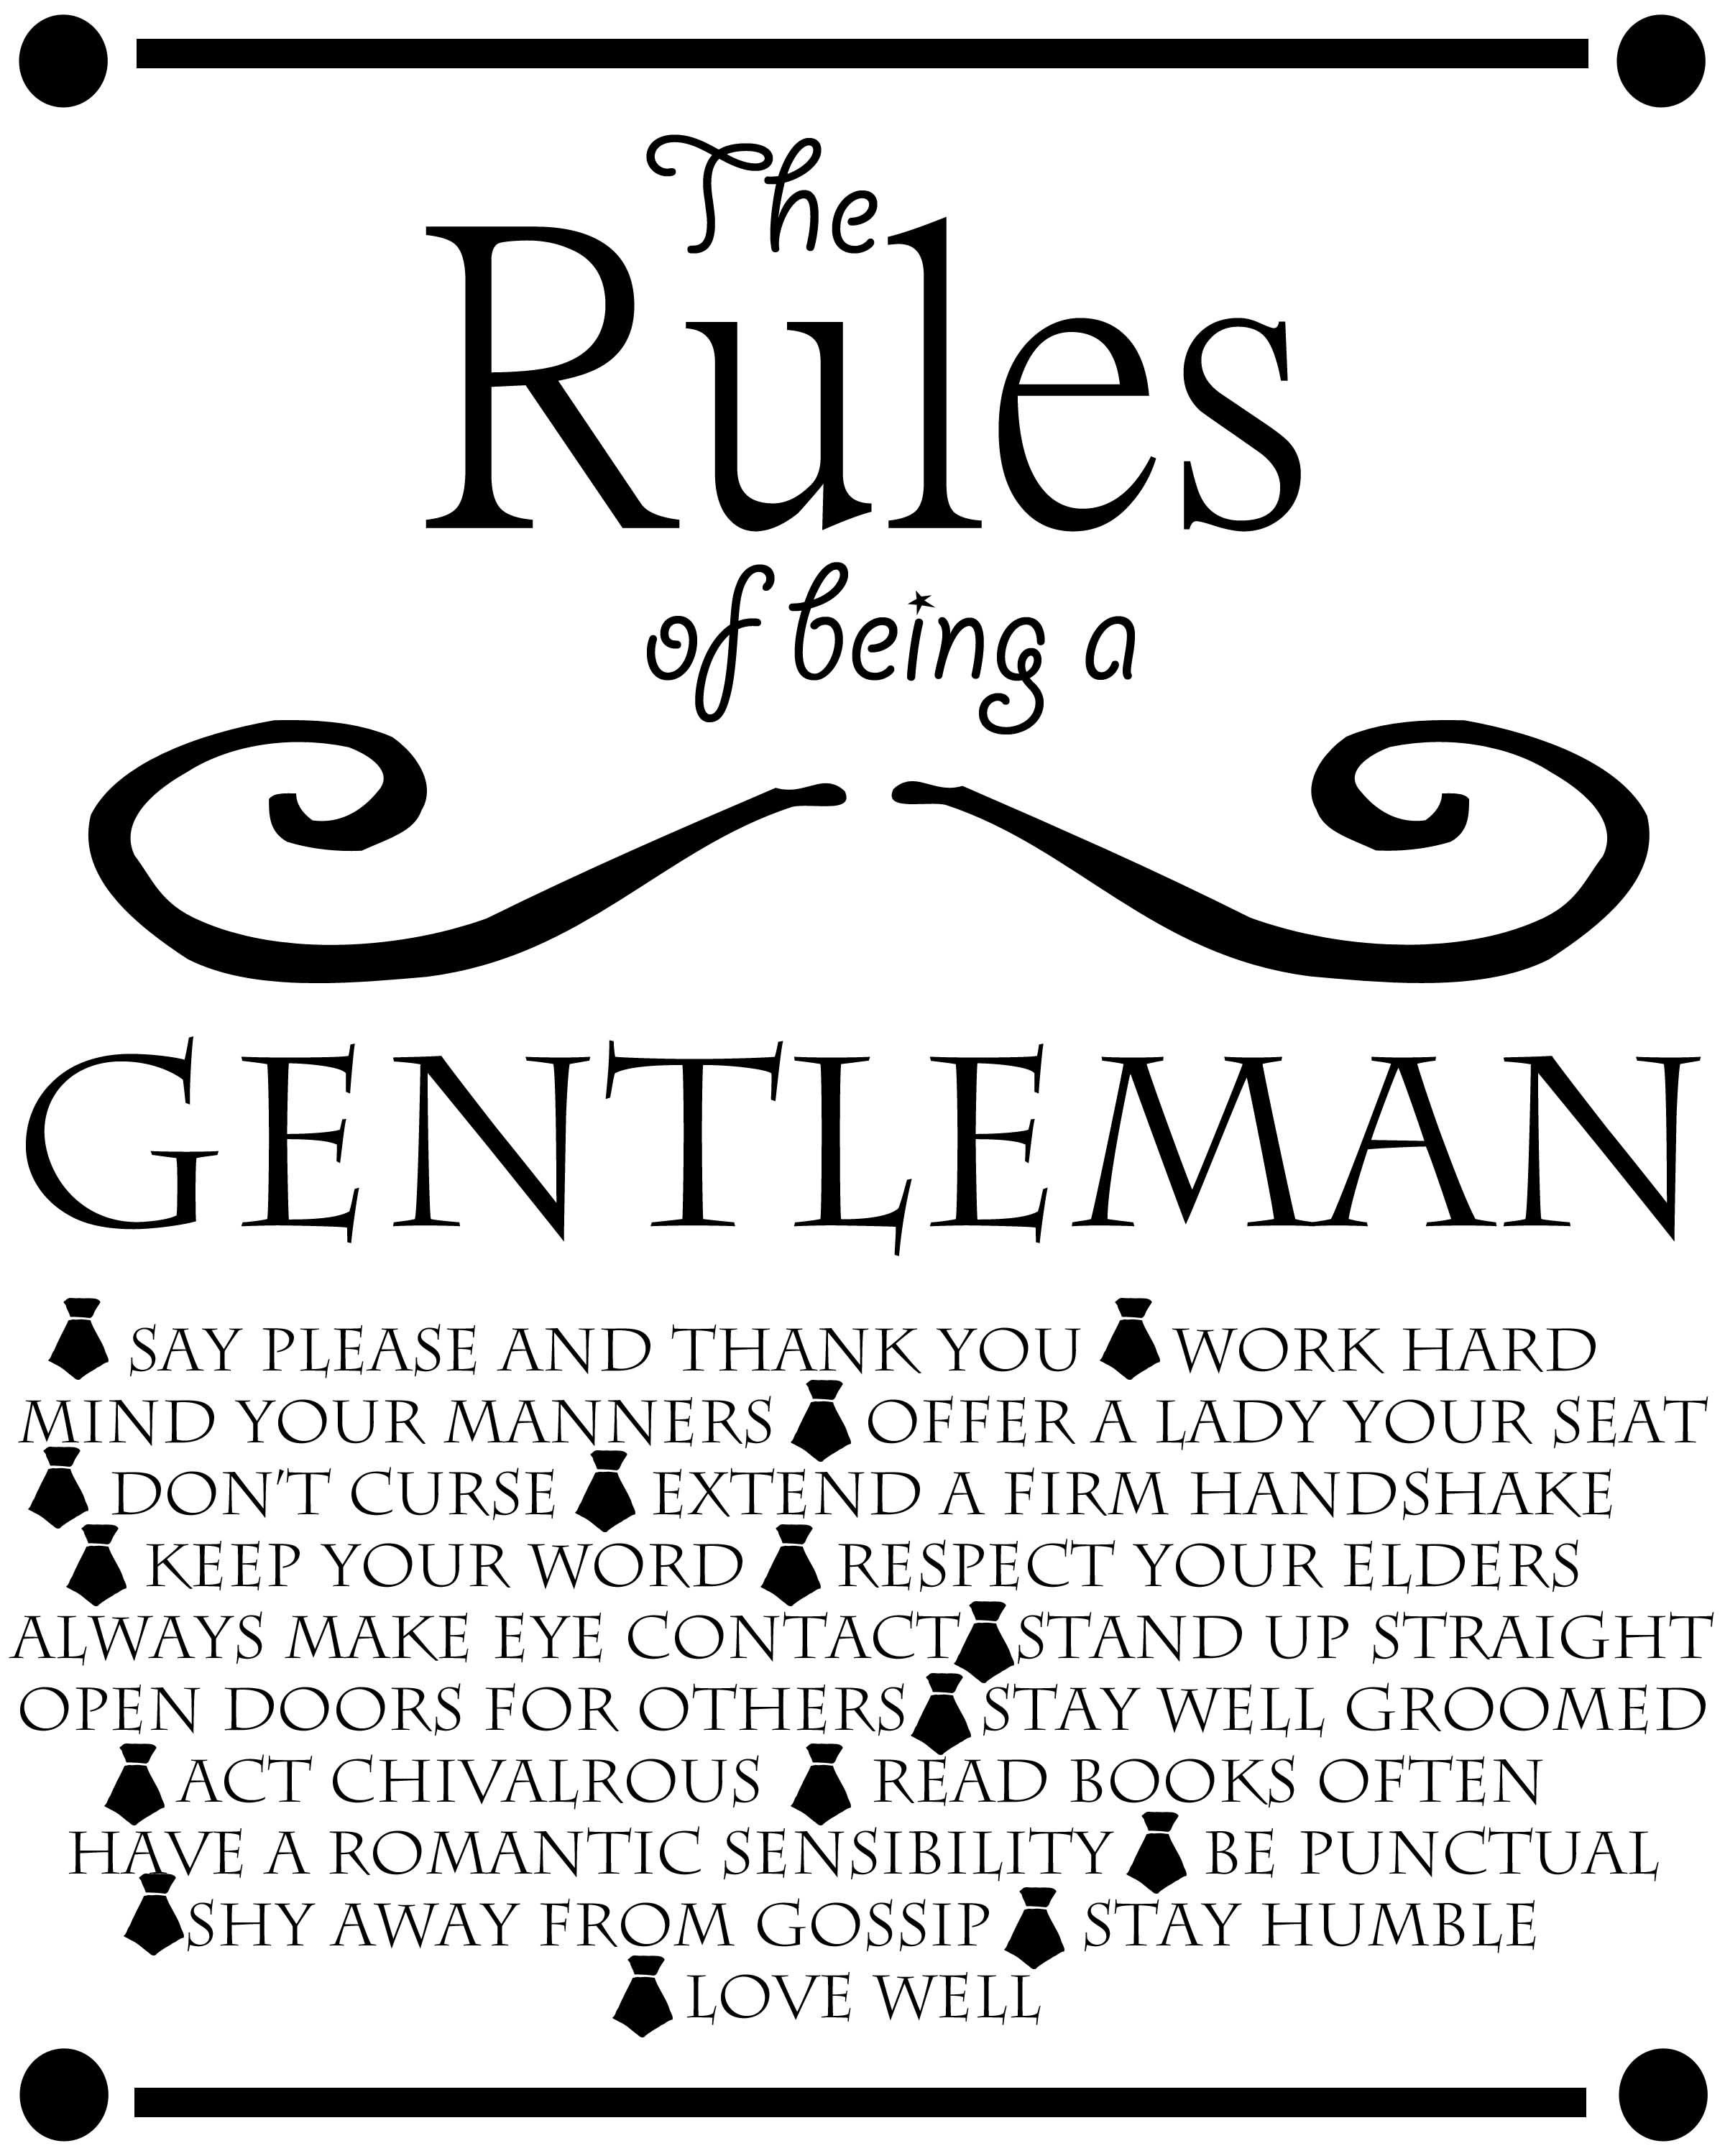 seeking gentleman, wealthy, how to know if s guy likes you must have intelligent things